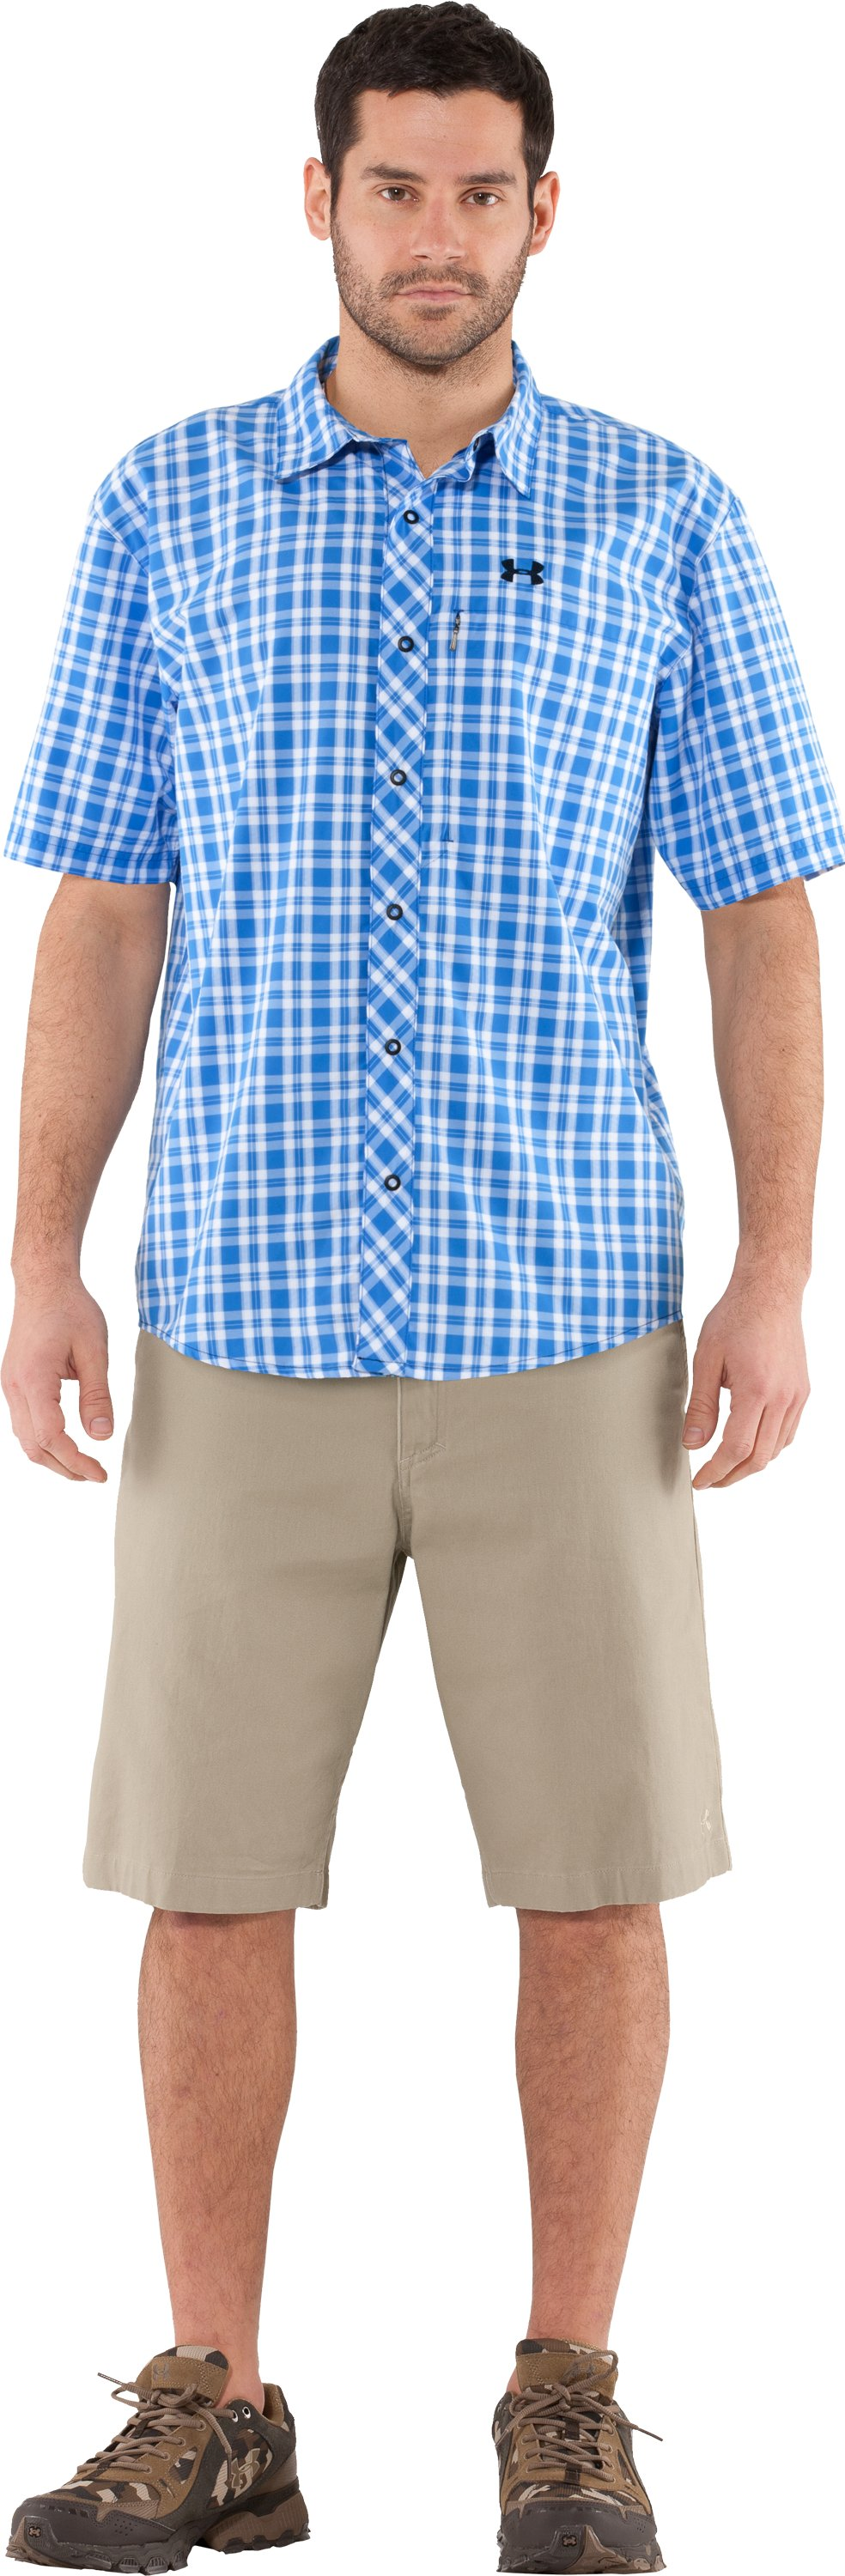 Men's UA High Desert Plaid Shirt, St. Tropez